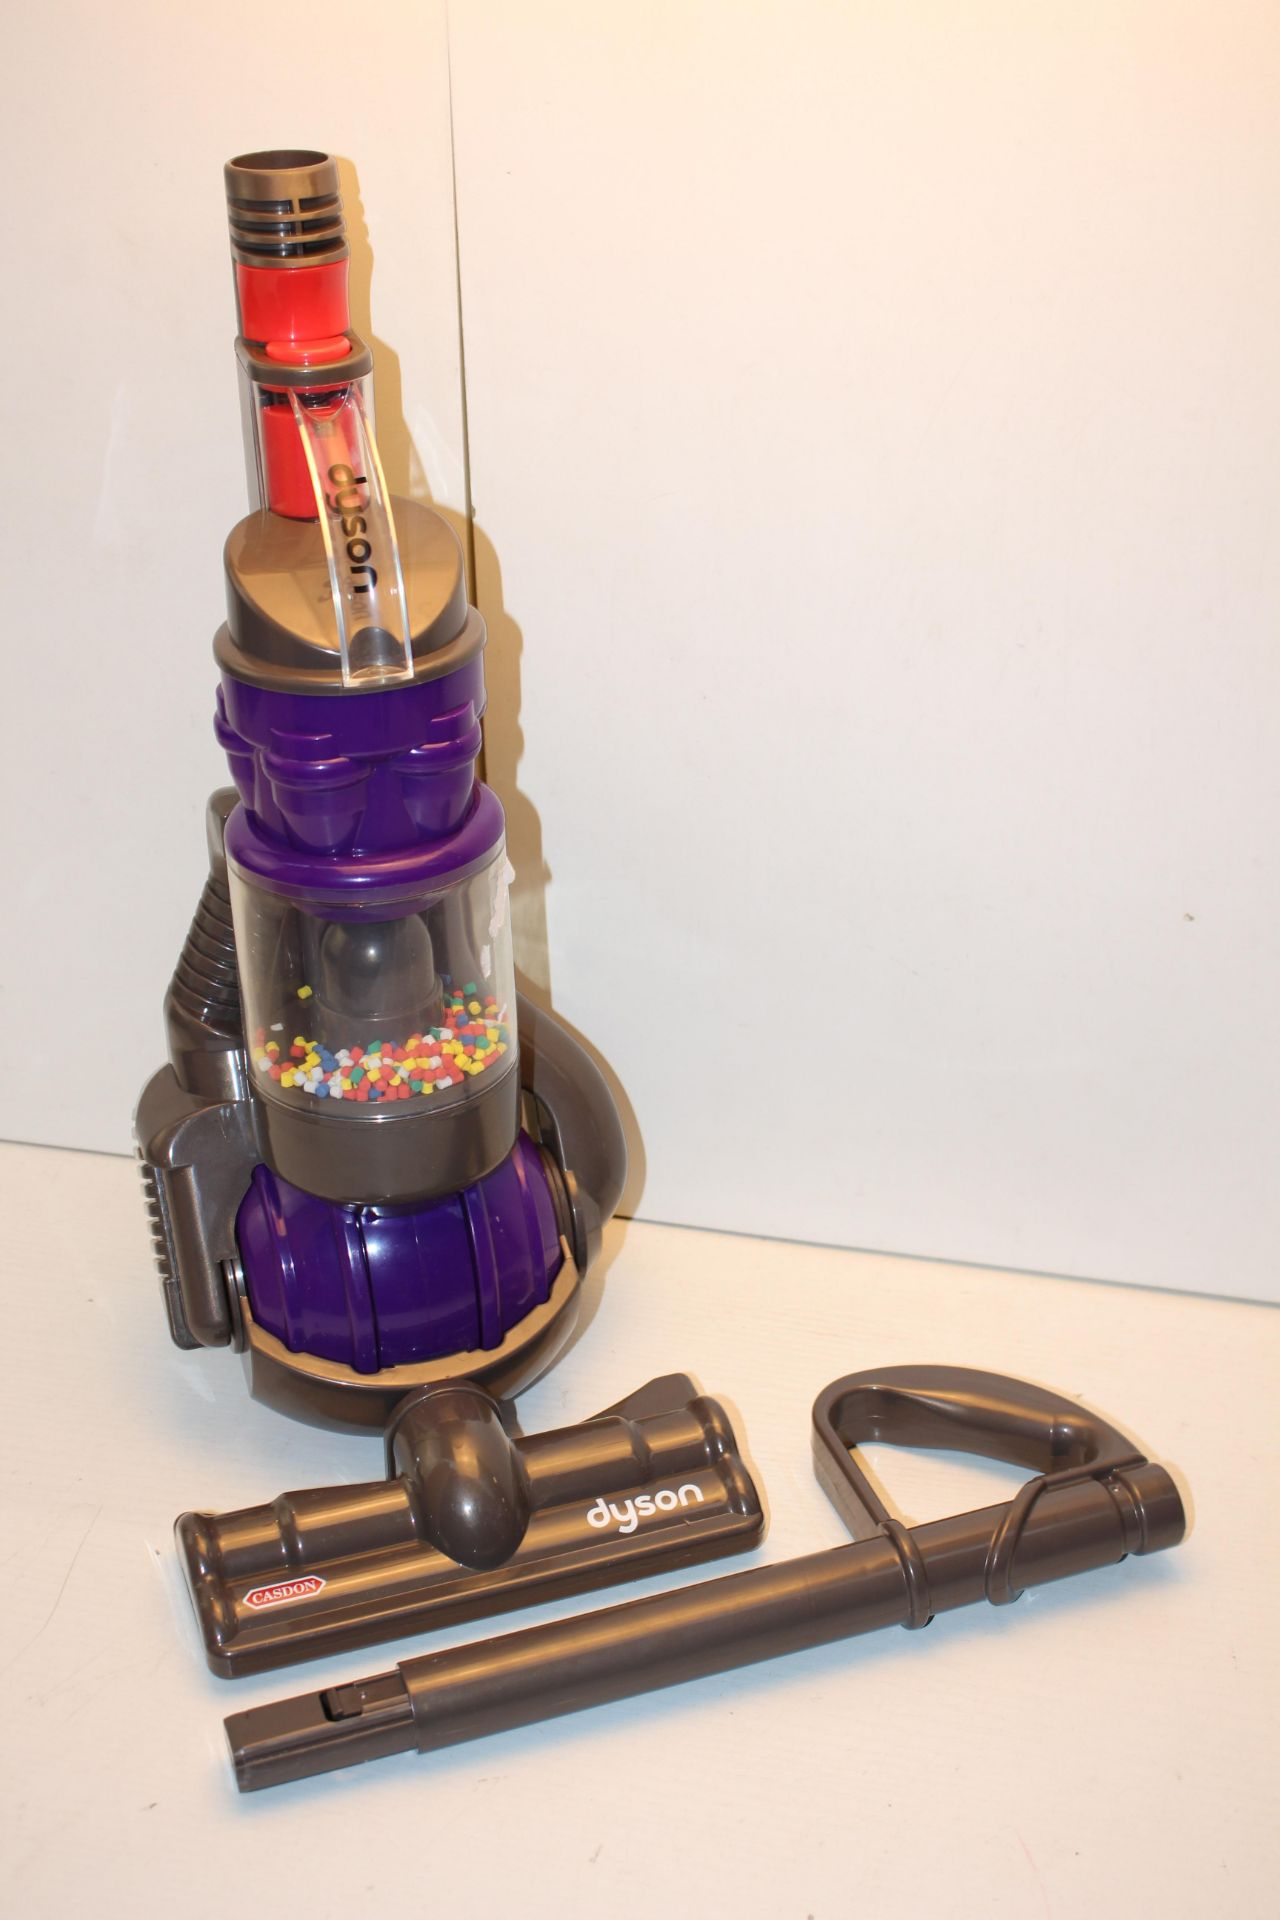 BOXED CASDON DYSON UPRIGHT VACUUM CLEANER (TOY)Condition ReportAppraisal Available on Request- All